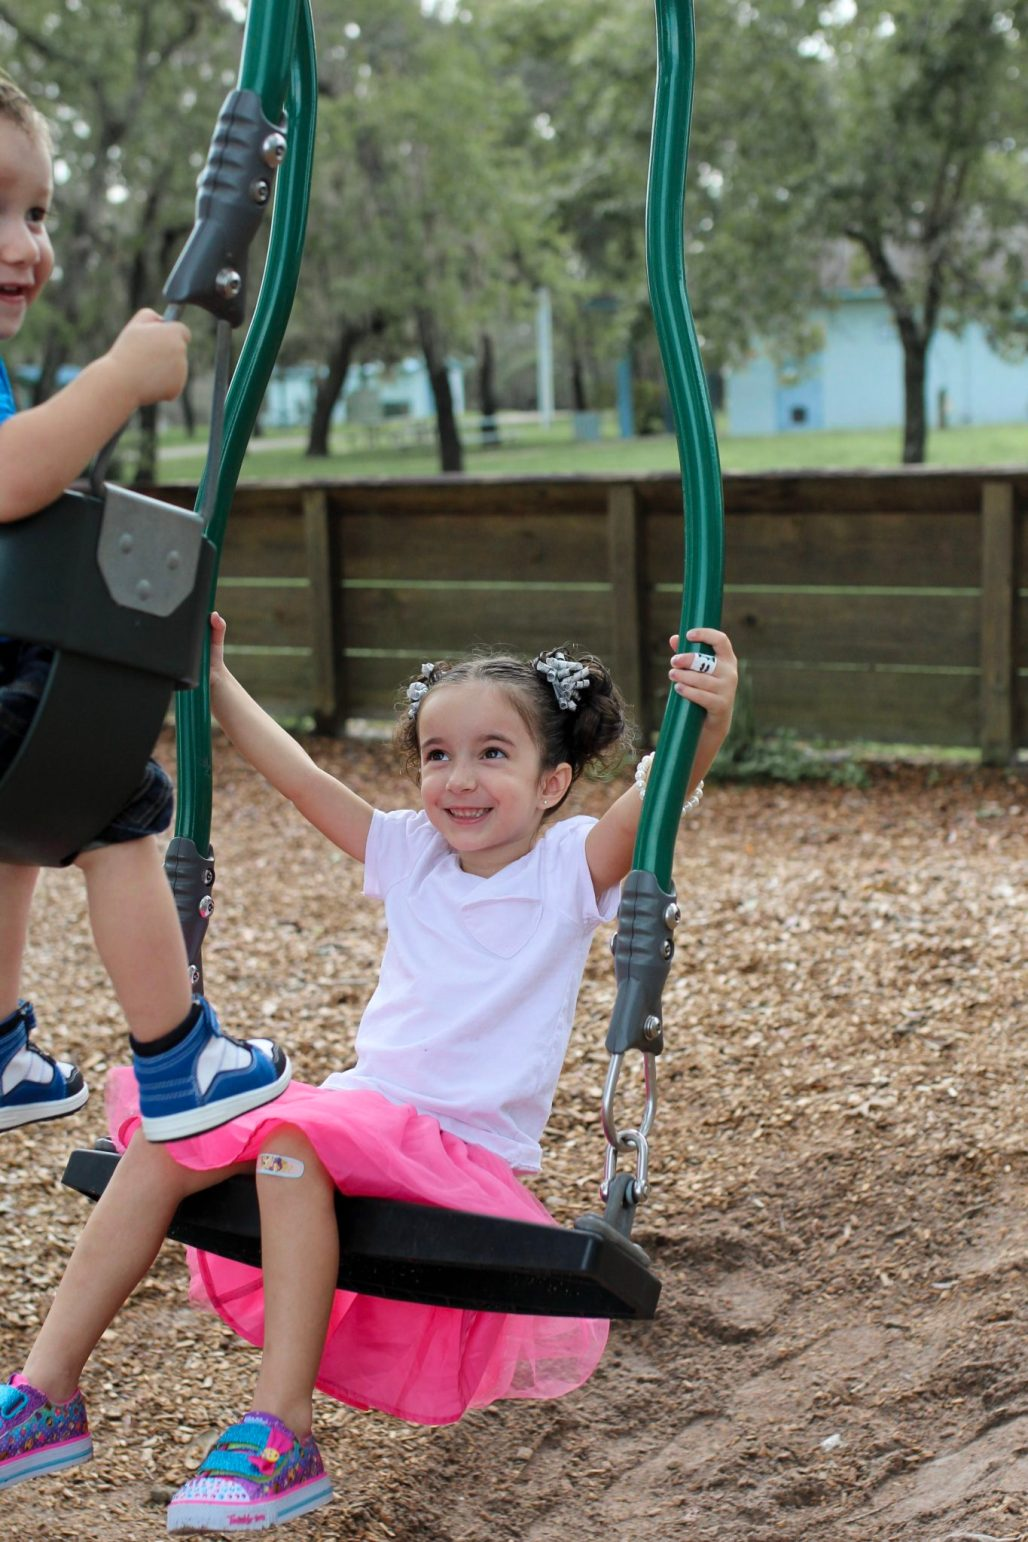 #positiveparenting, positive parenting techniques, postive parenting blog, national yes day, say yes to everything for a day, yes day rules, positive parenting toddlers, positive parenting solutions